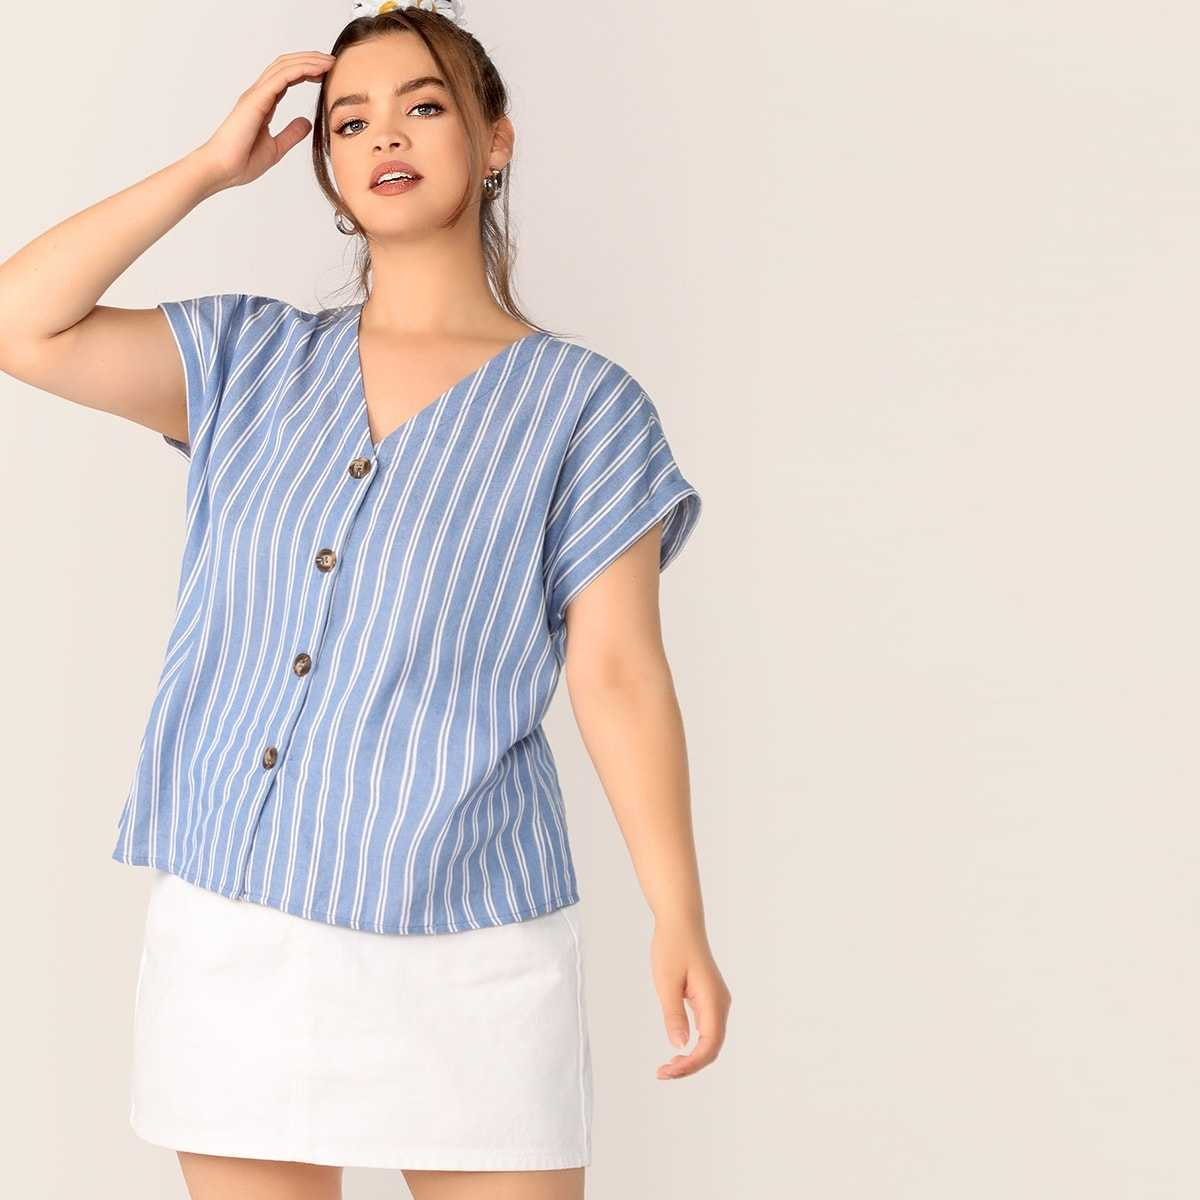 Plus Striped V-neck Button Fly Cuffed Sleeve Top - Shein - GOOFASH